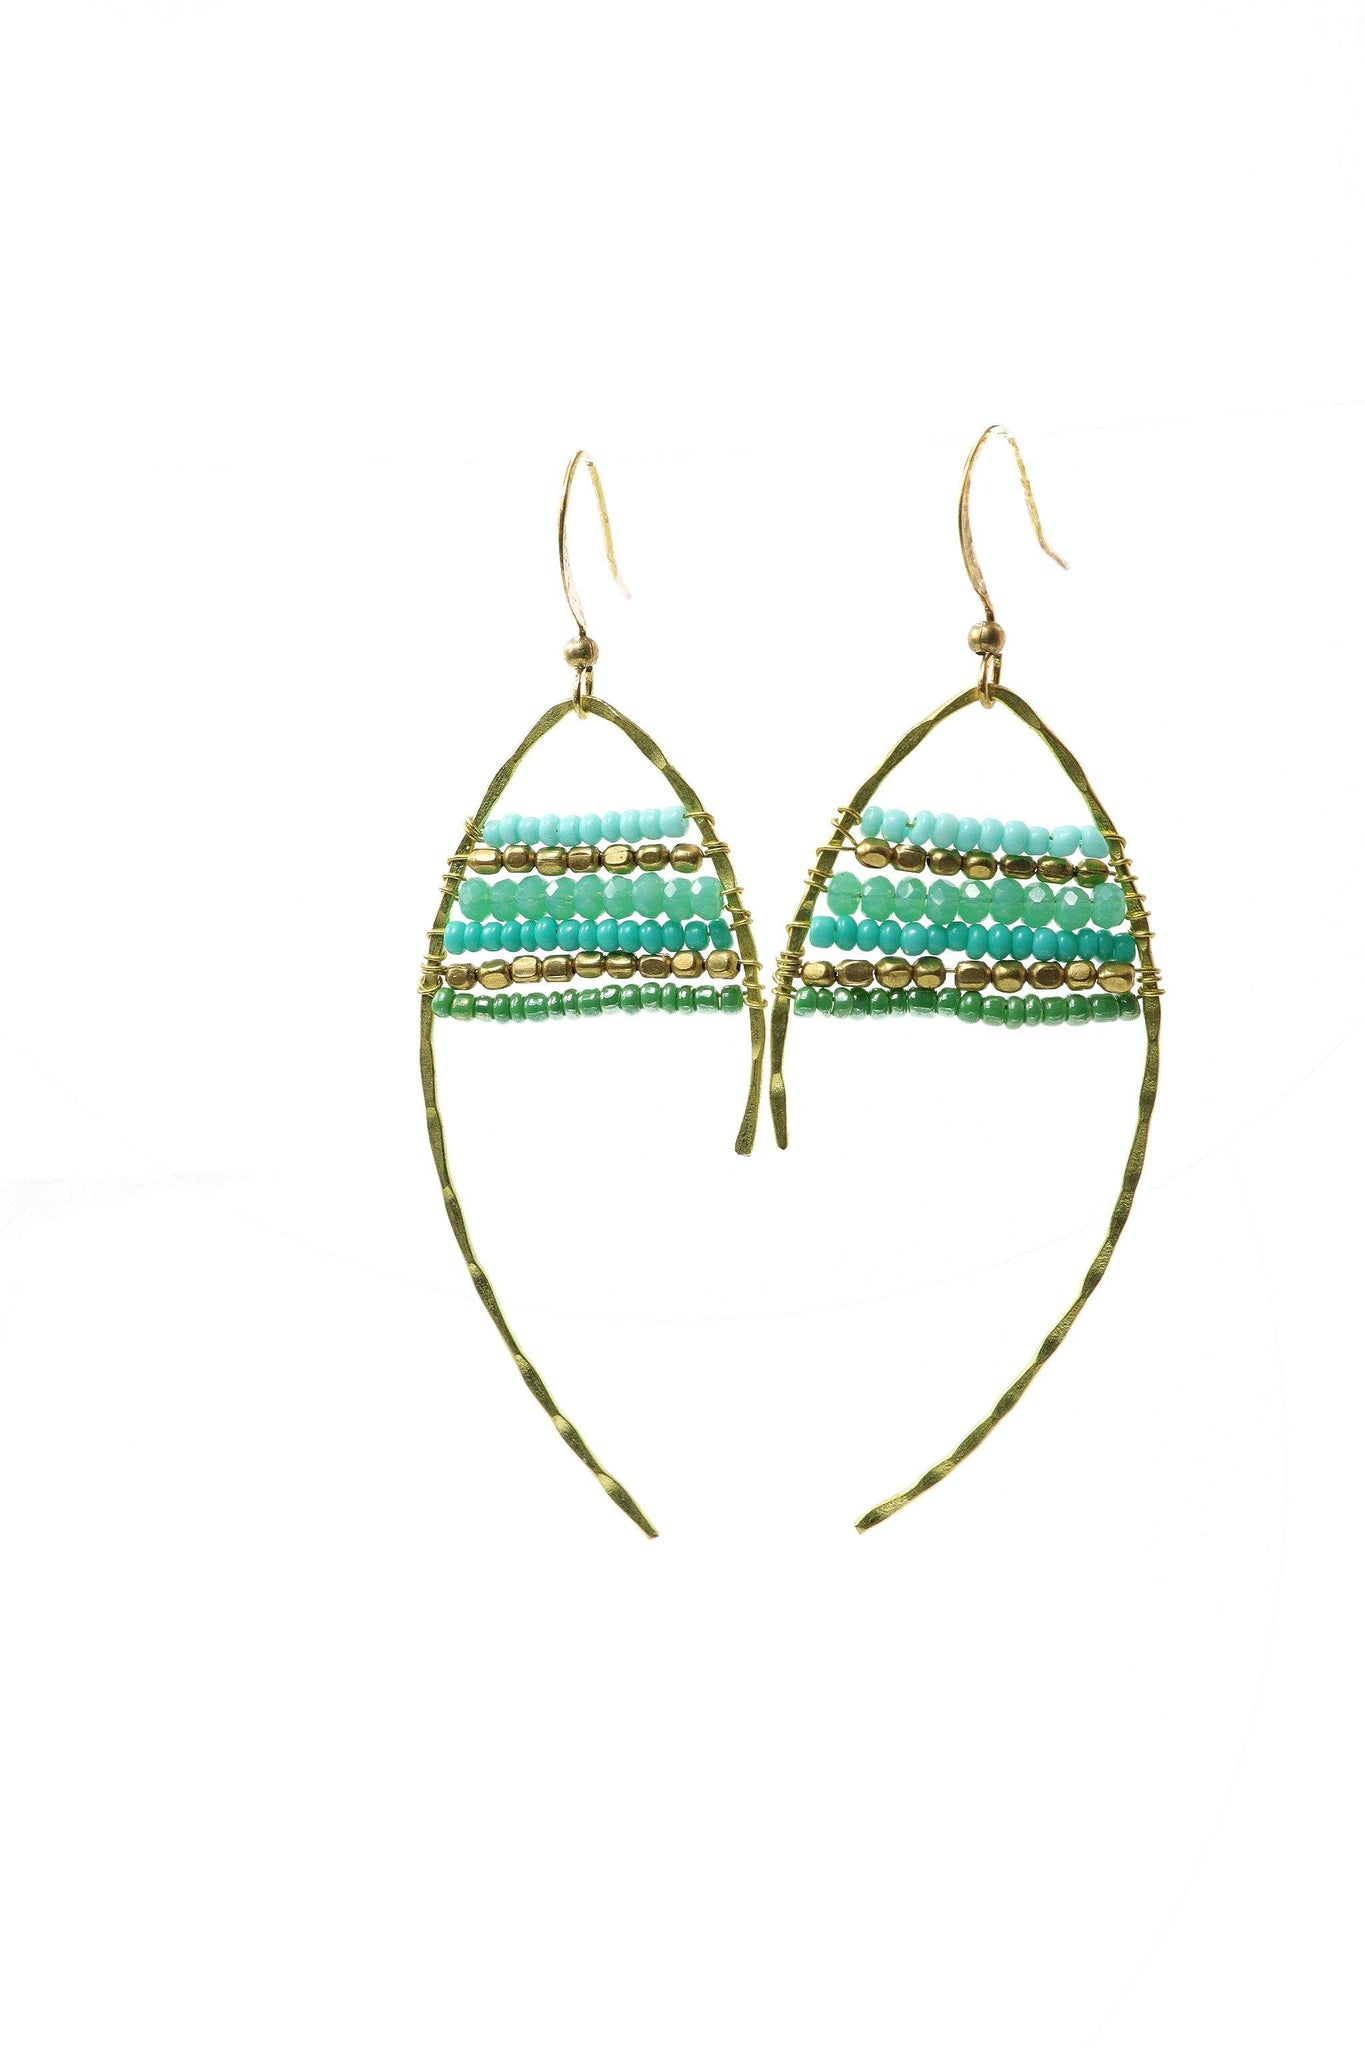 These are statement fish-shaped brass beaded earrings in shades of turquoise. They feature brass and acrylic and glass beads. They are handmade with love in Thailand. This is a Fairtrade Product.